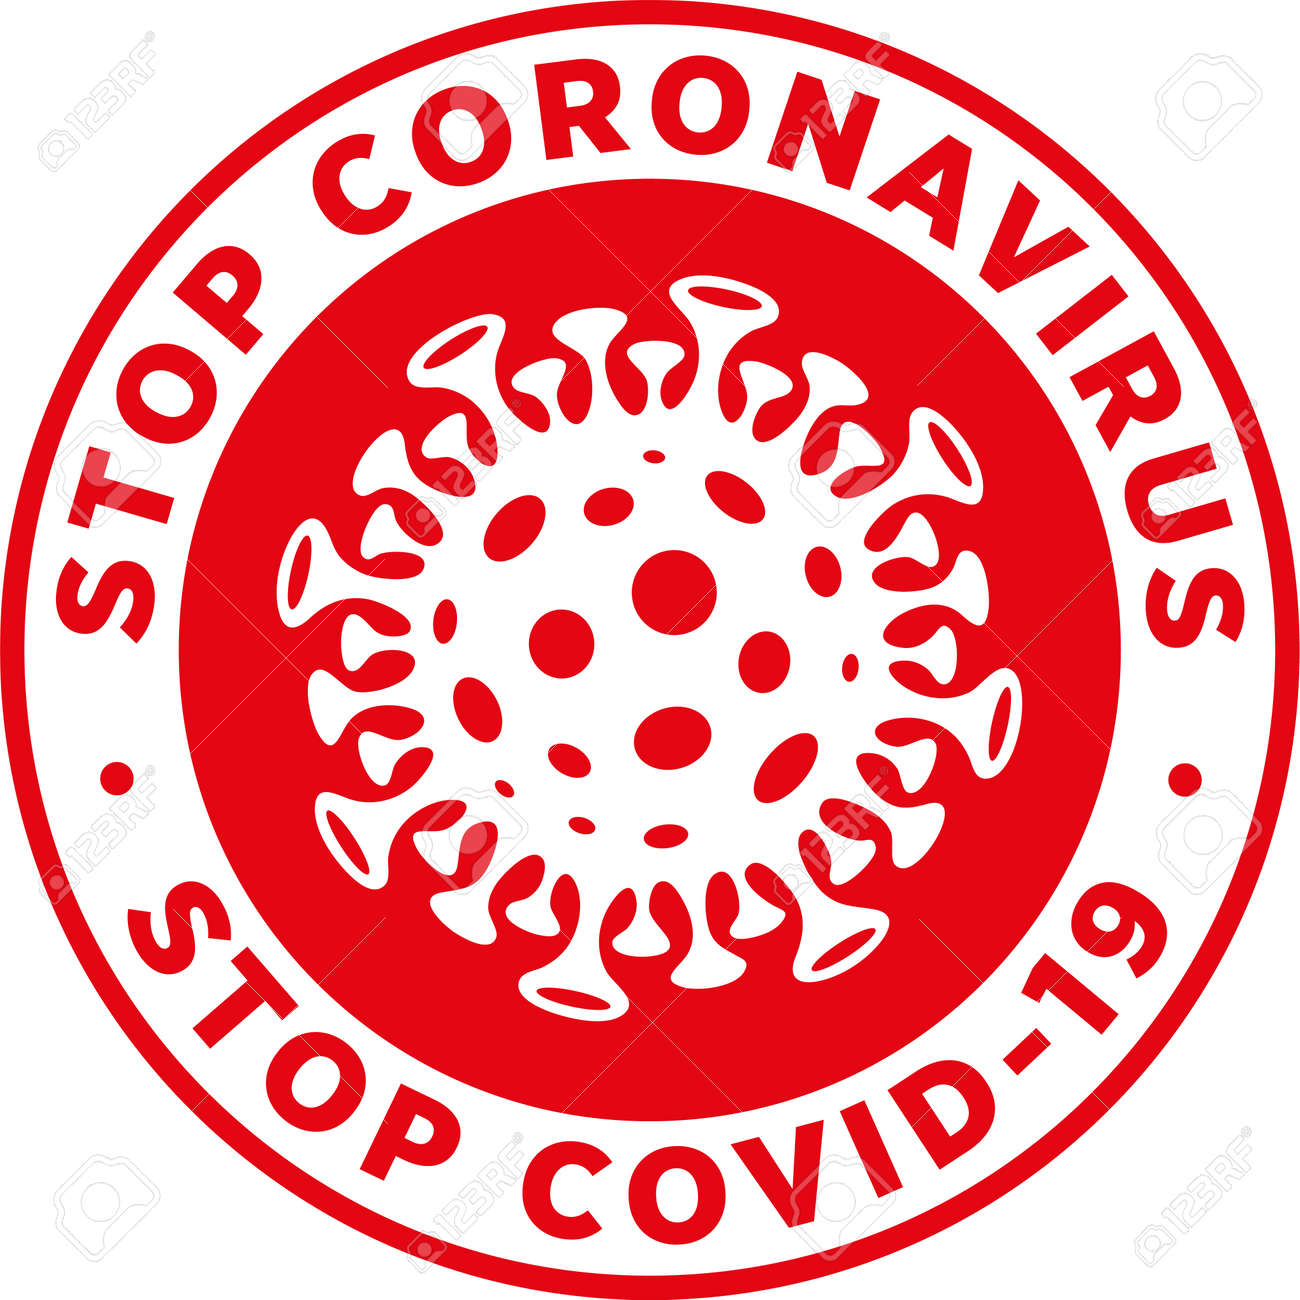 Stop Coronavirus Stop Covid19 Signage or Sticker for help reduce the risk of catching novel coronavirus. Vector sign. - 144328427